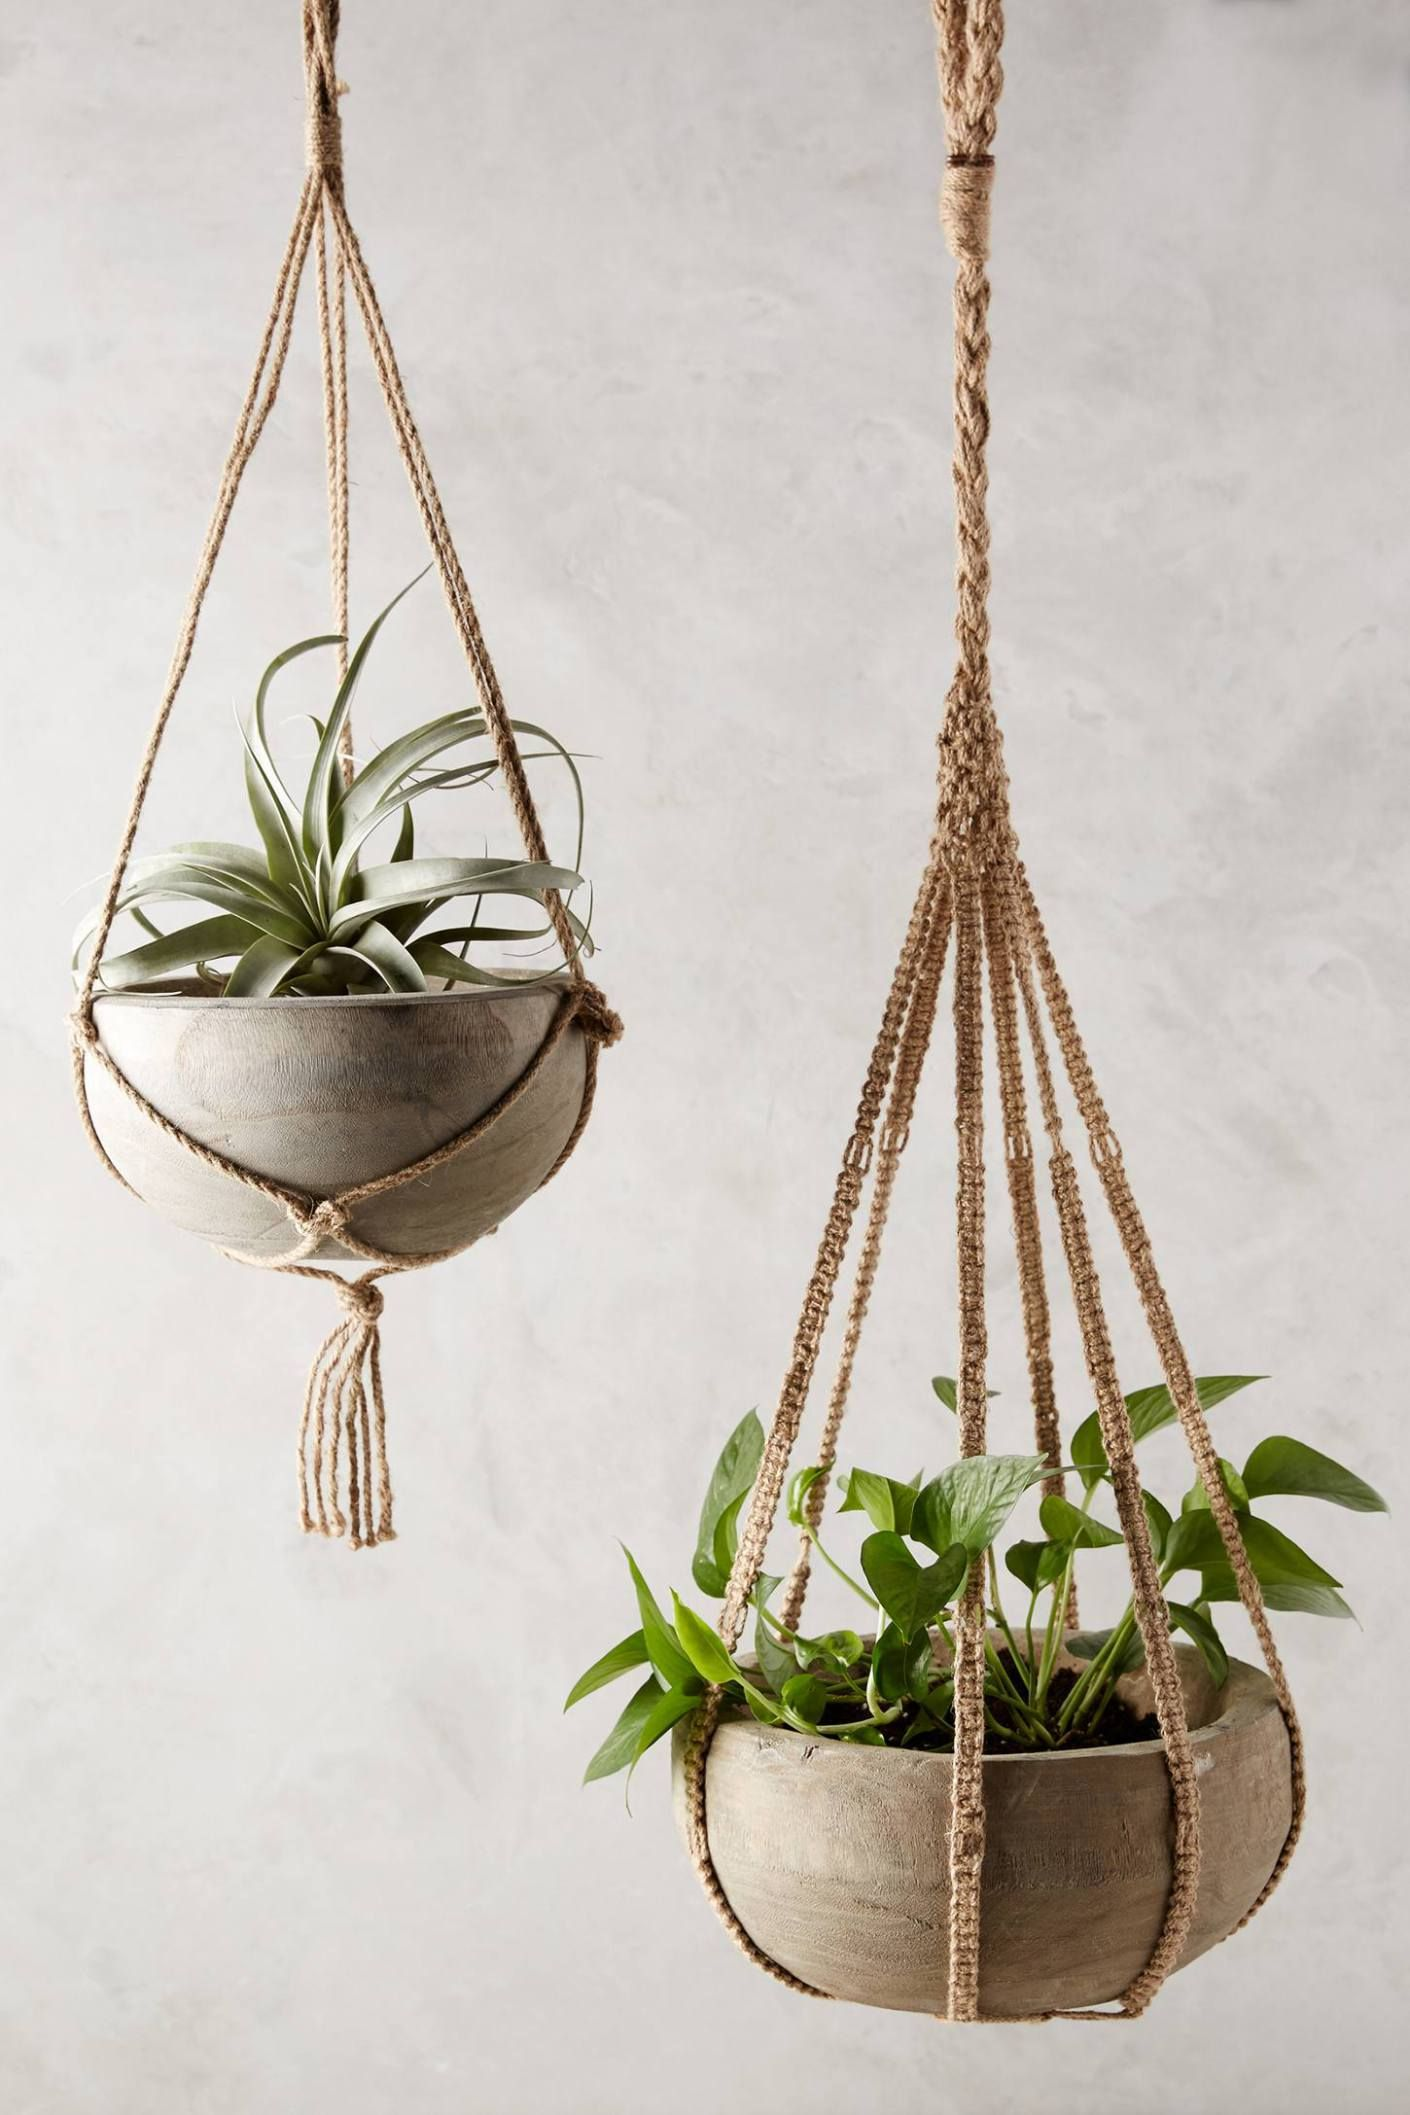 Anthropologie's New Arrivals Home & Decor Planters